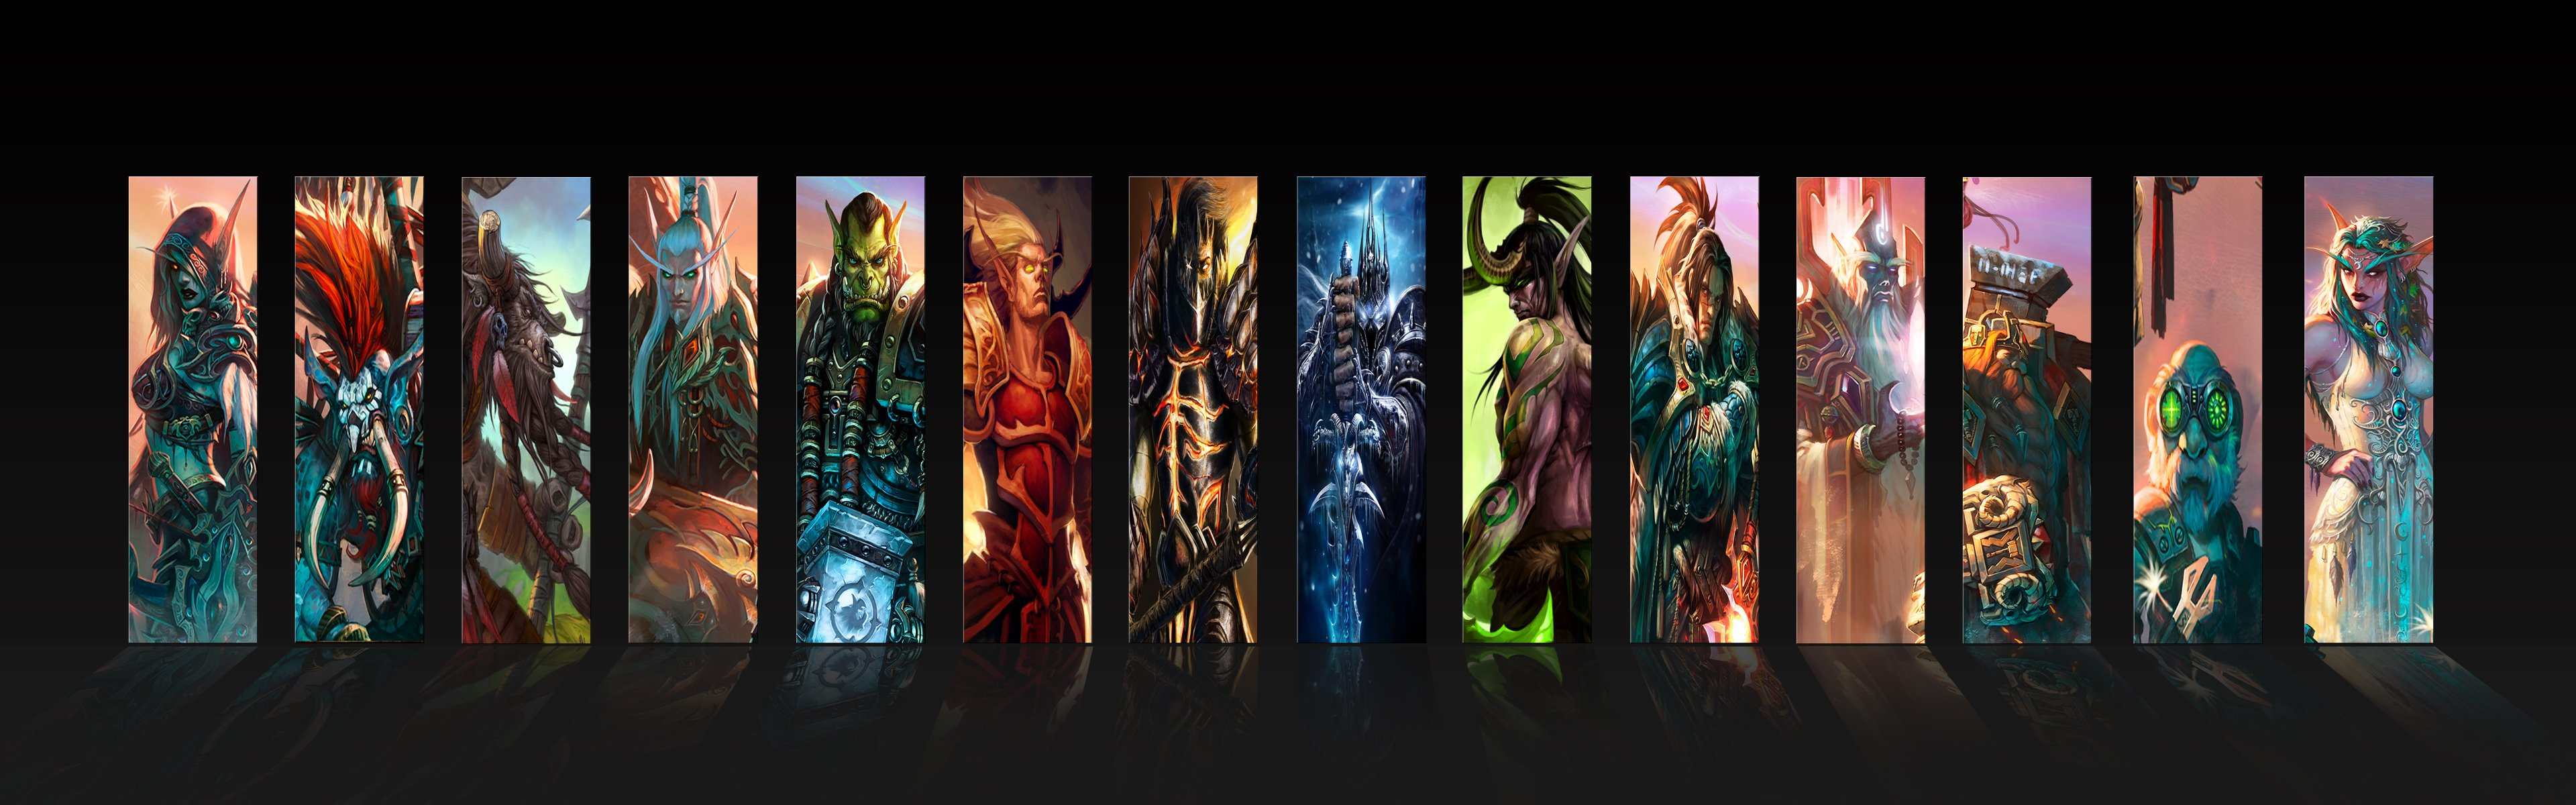 World of Warcraft Lich King deathwing thrall Sylvanas Windrunner vol'jin cairne bloodhoof